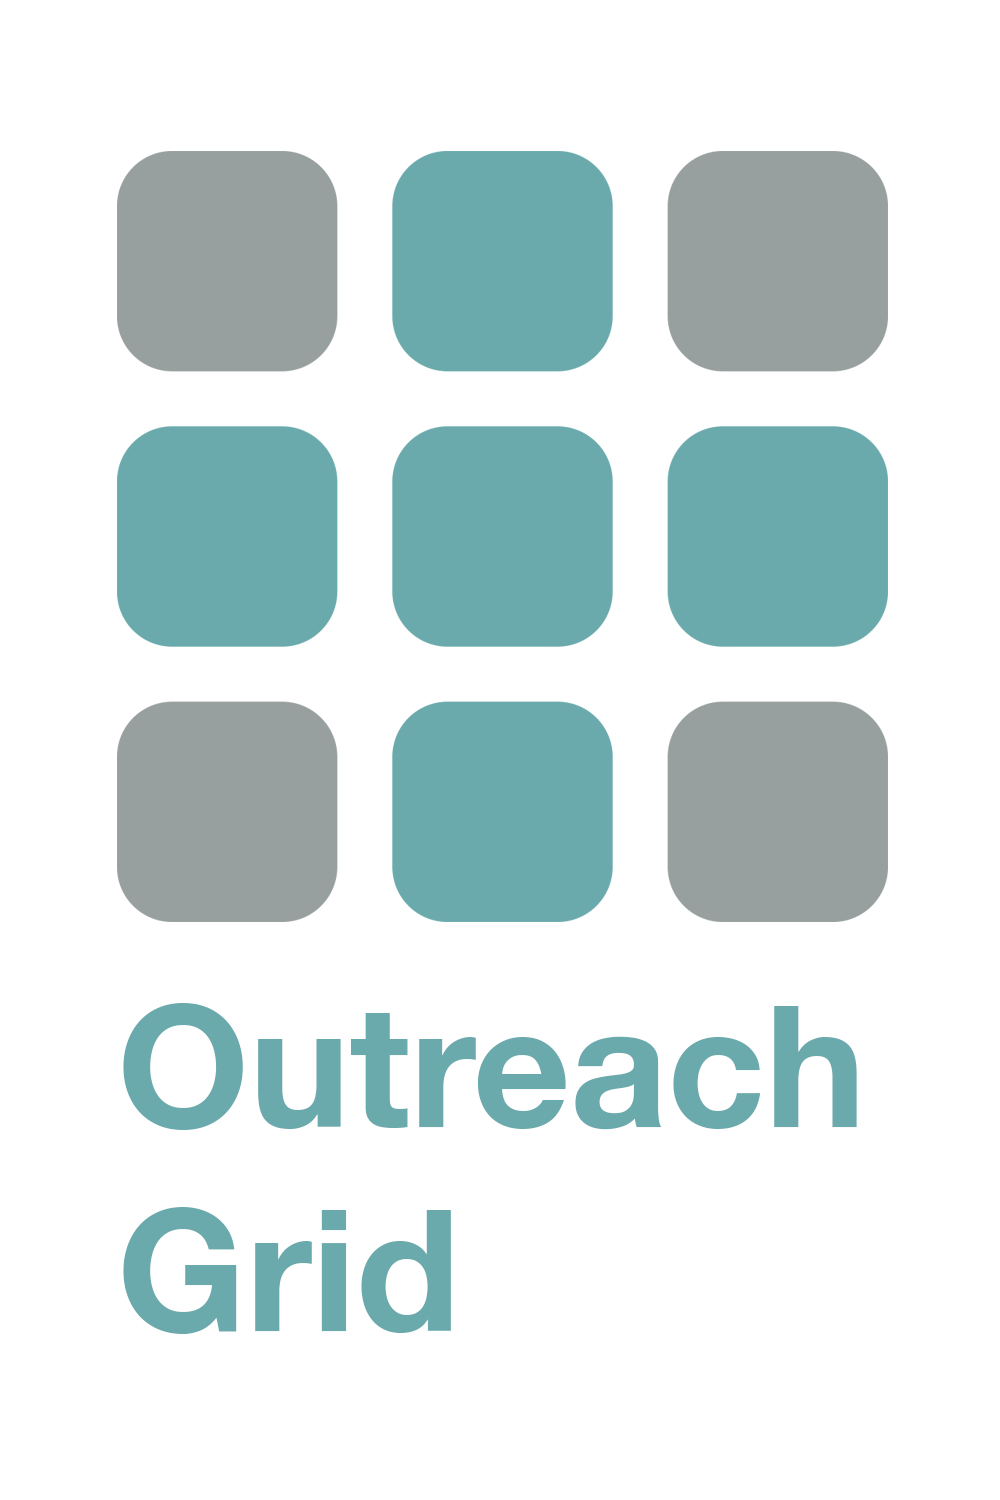 Outreach grid logo words